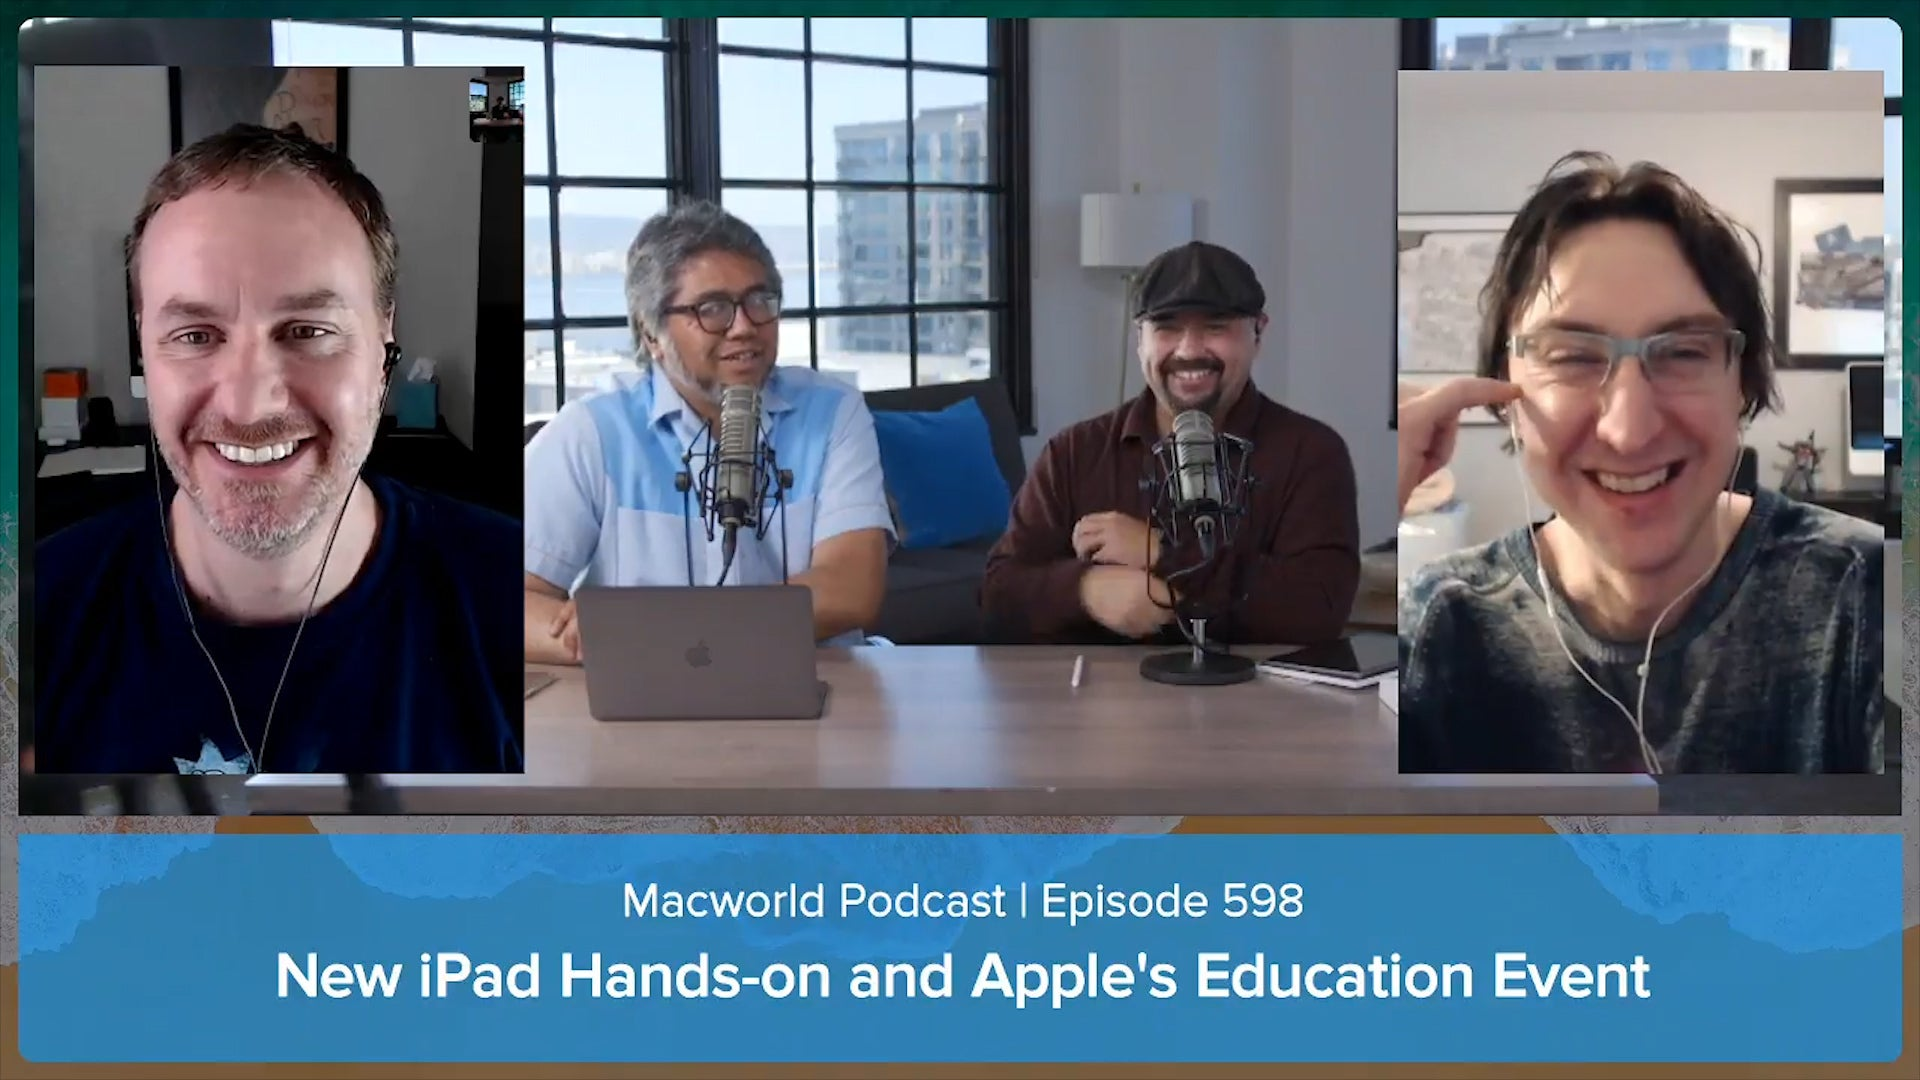 Macworld Podcast 598